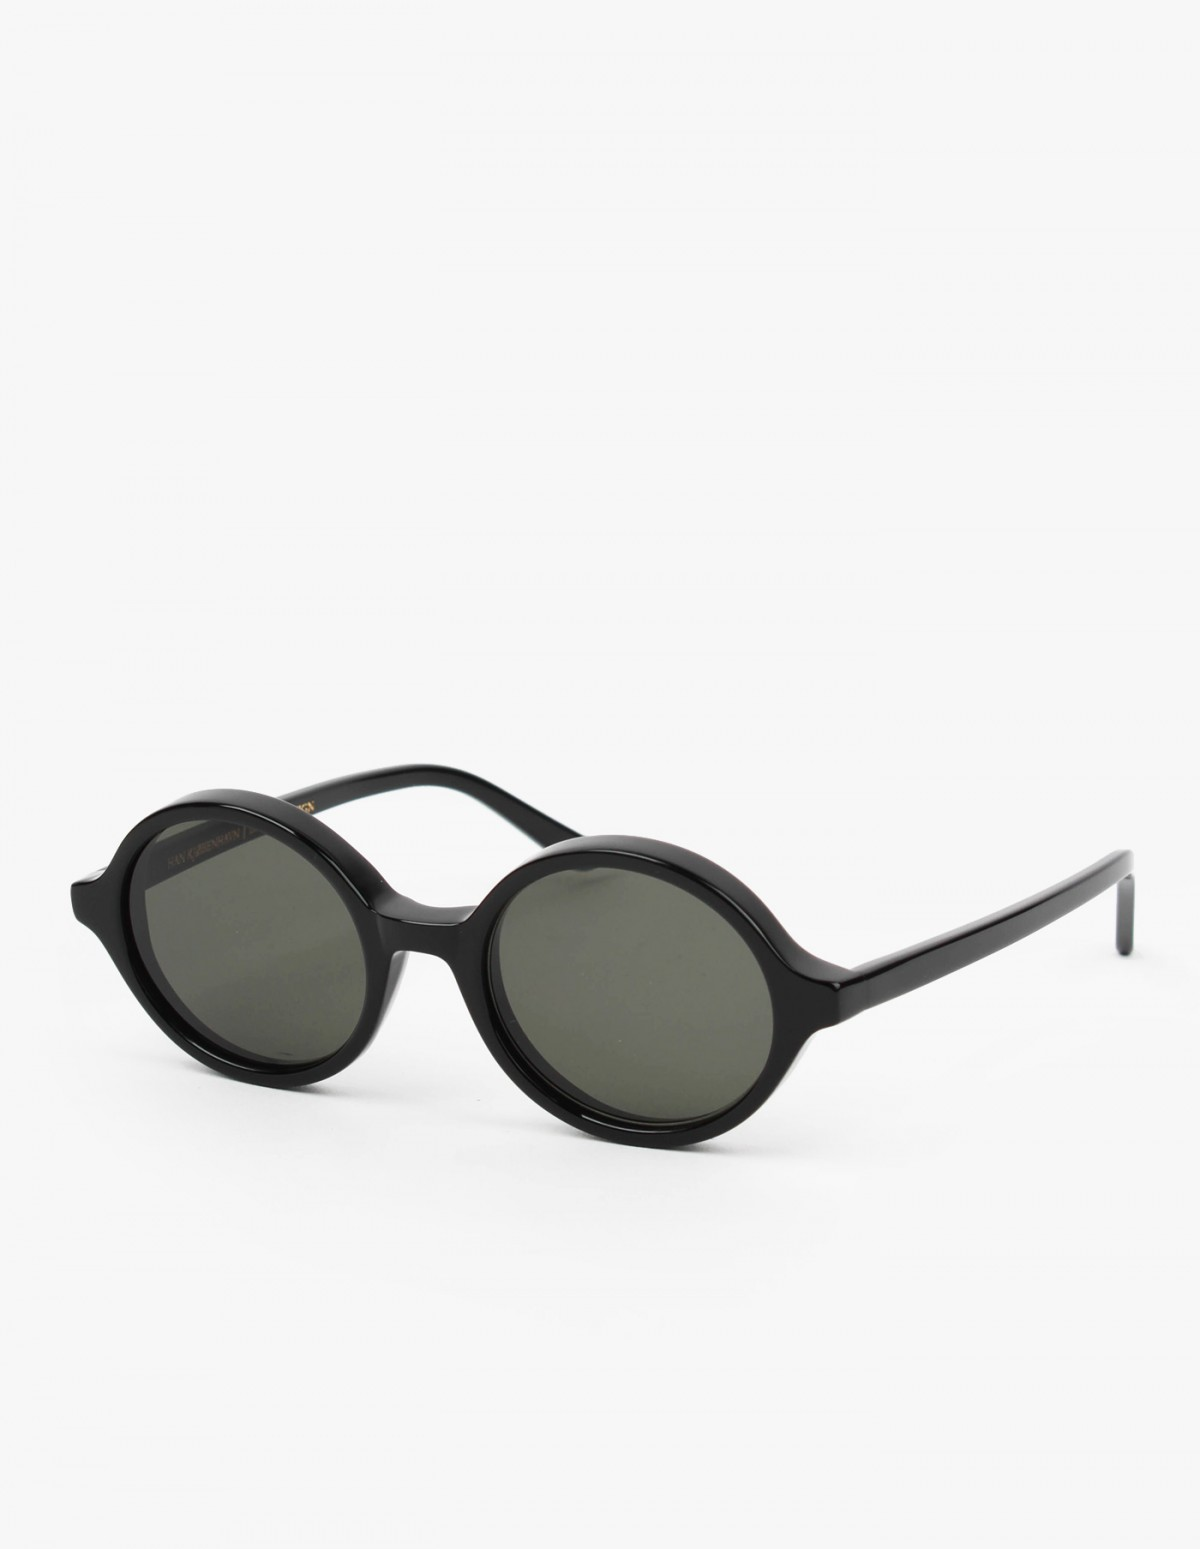 Han Kjøbenhavn Doc Sunglasses in Black